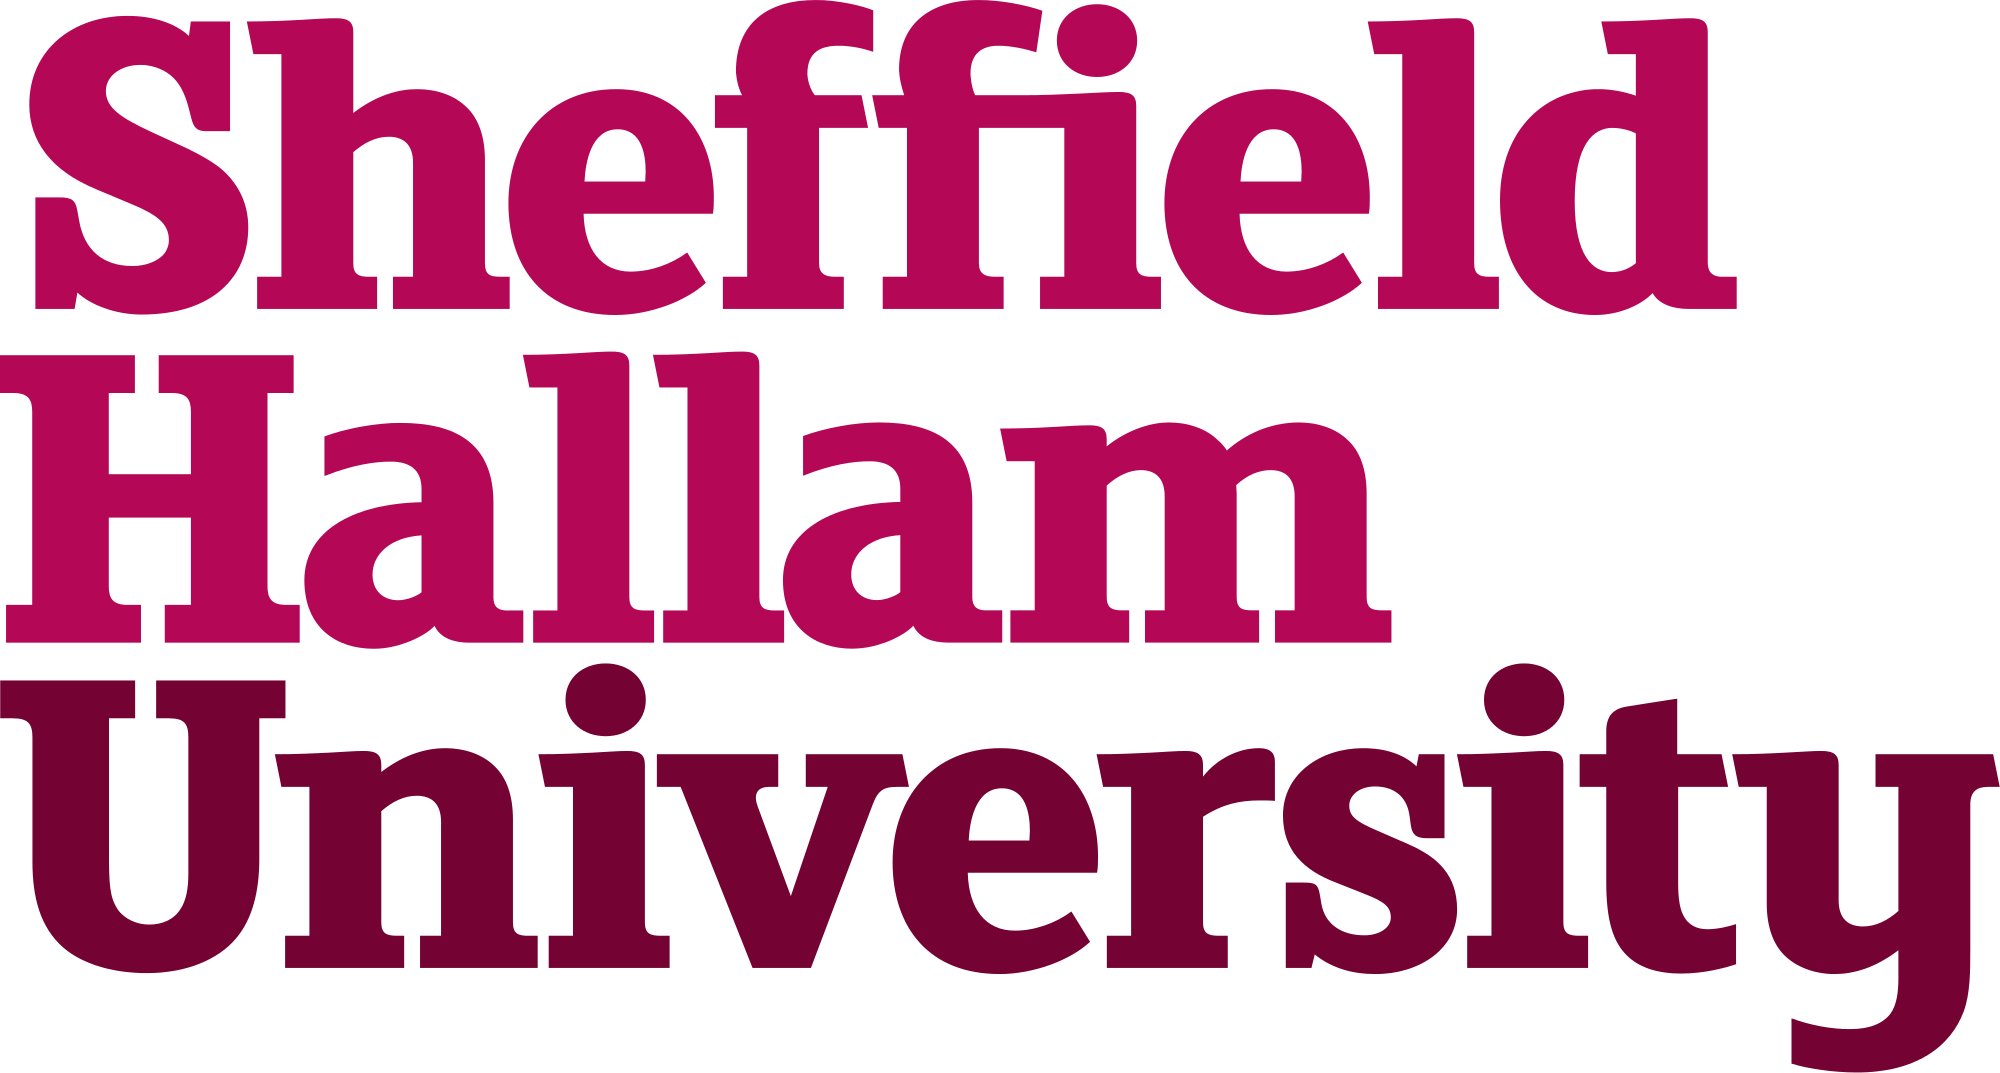 Sheffield_Hallam_University_logo_svg.png